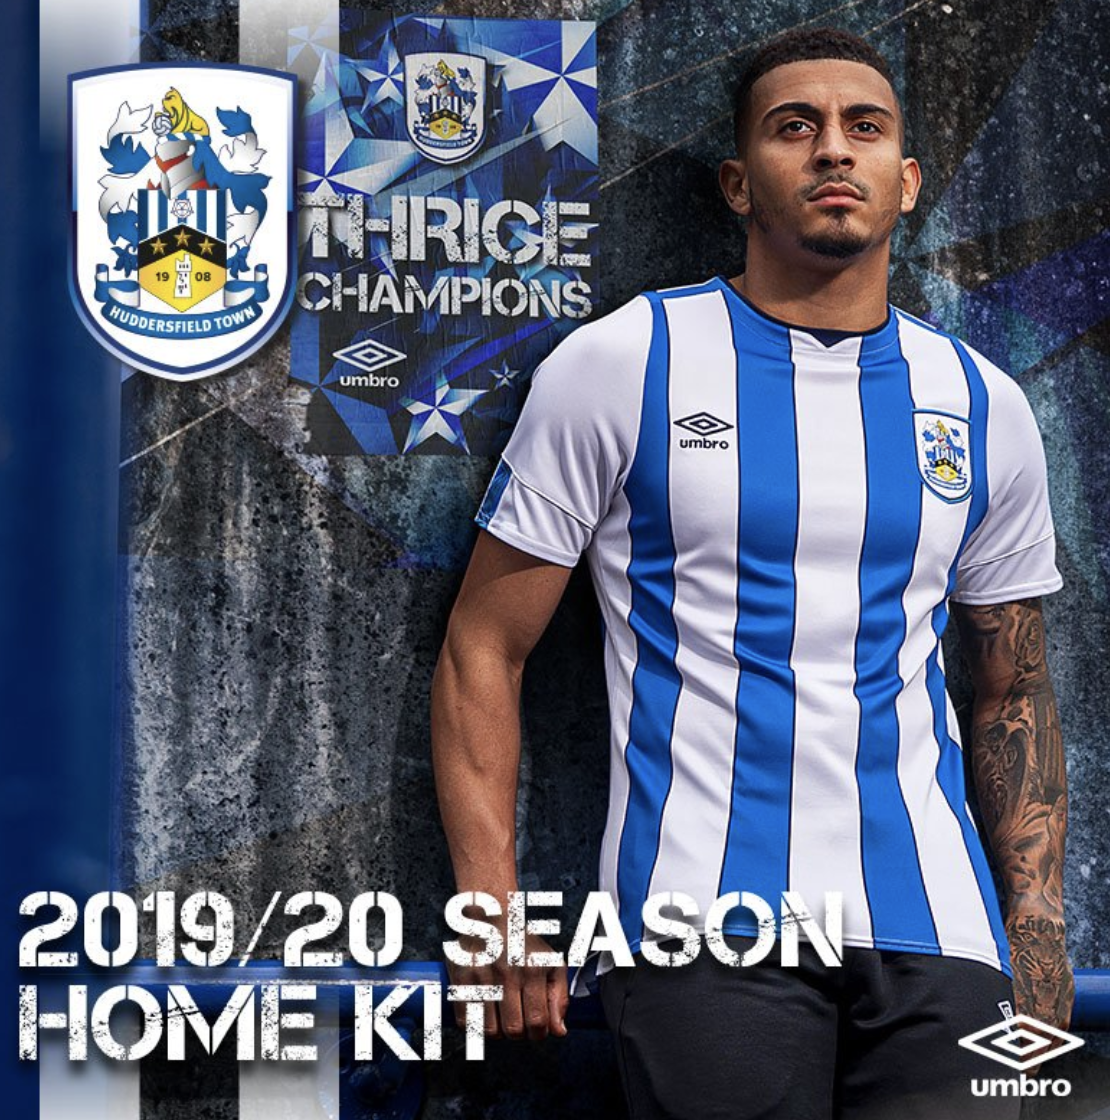 Huddersfield Town new home jersey for the 2019/2020 season